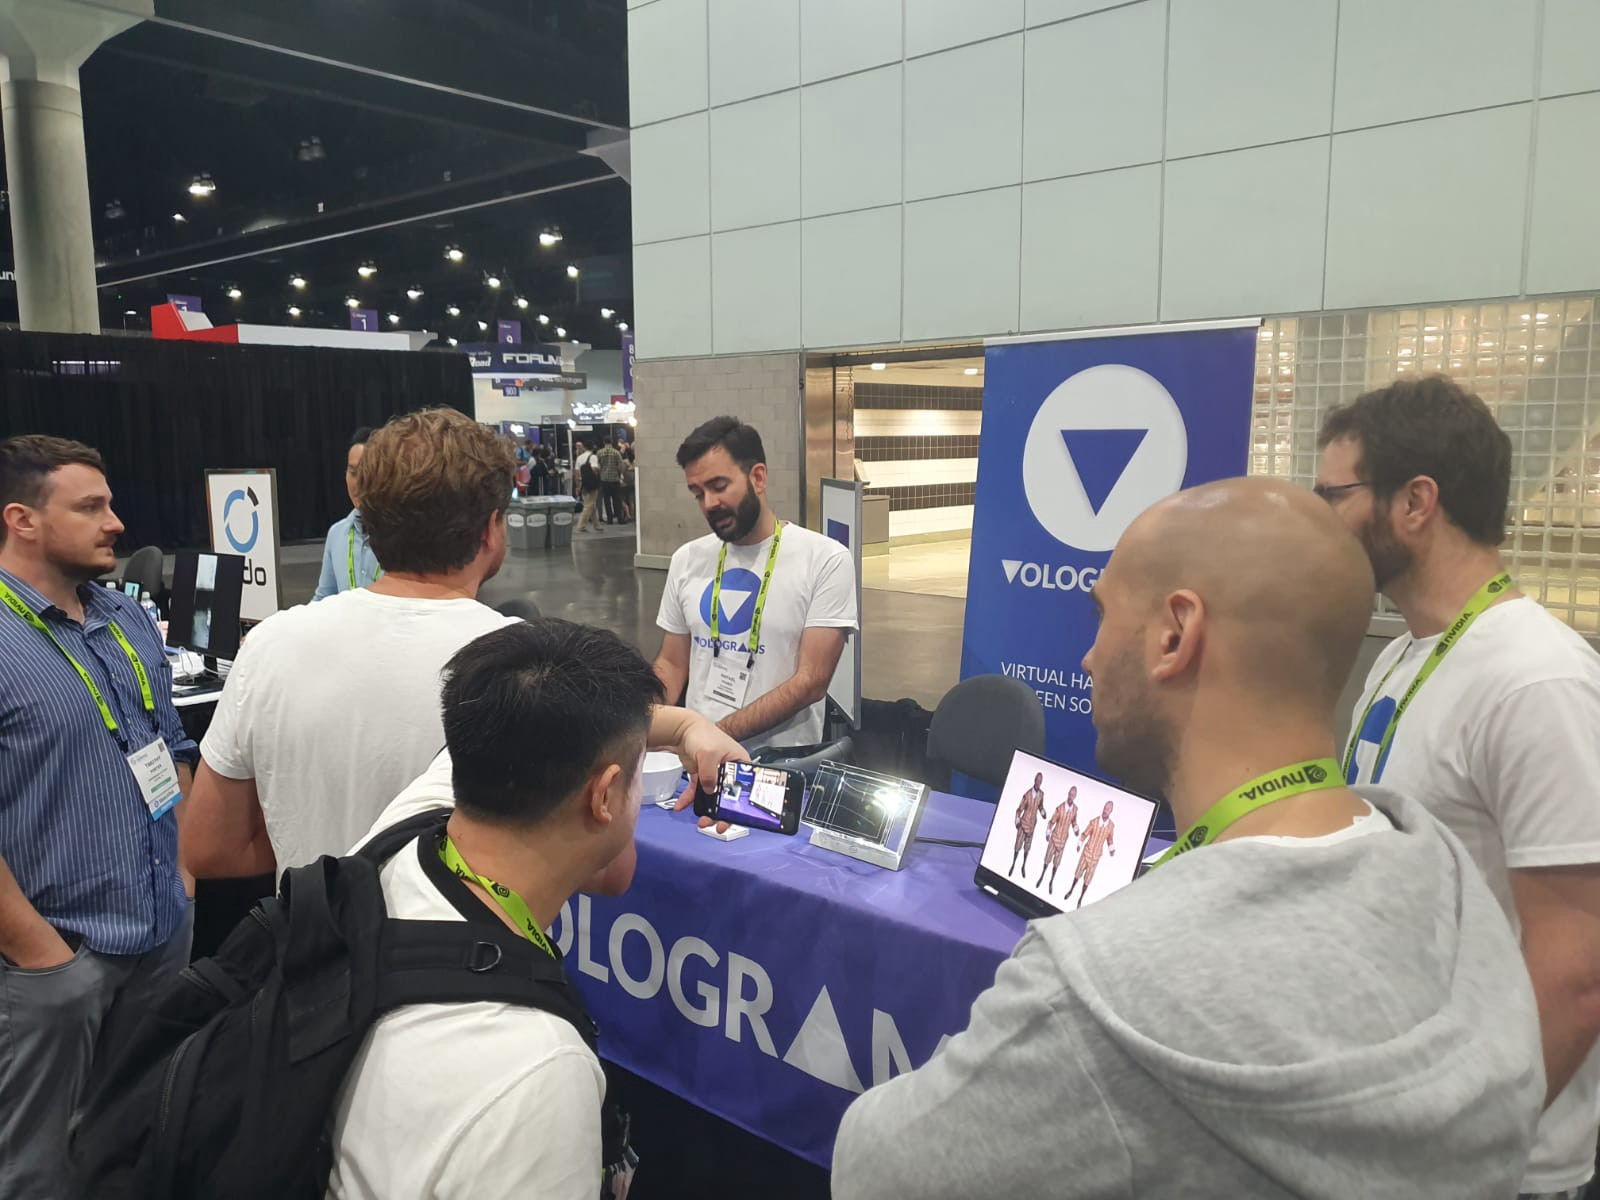 Rafa providing demos for those interested at the Volograms exhibition table